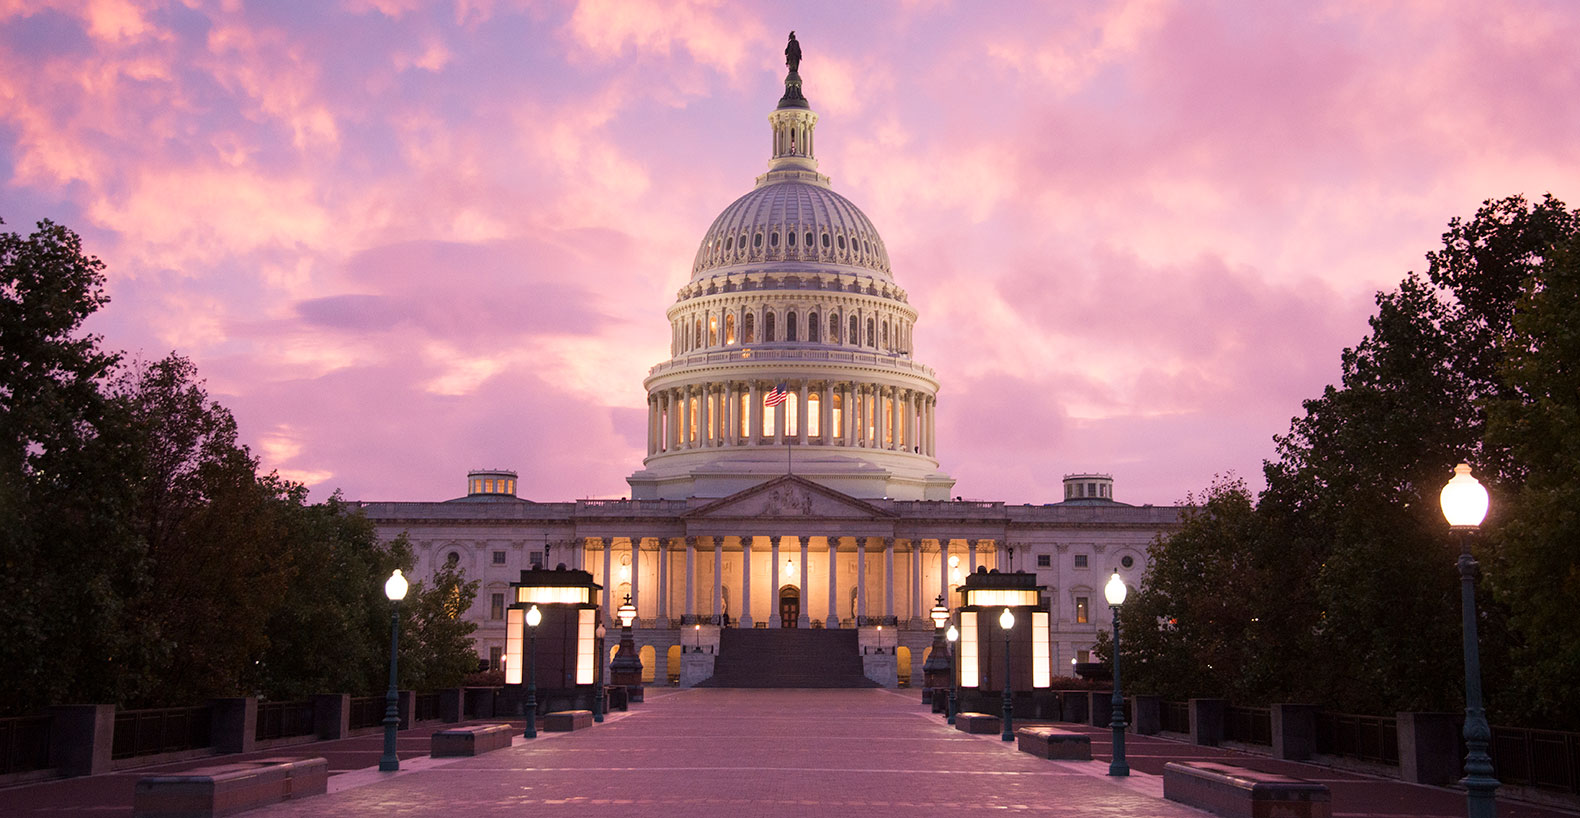 Capitol with pink sky